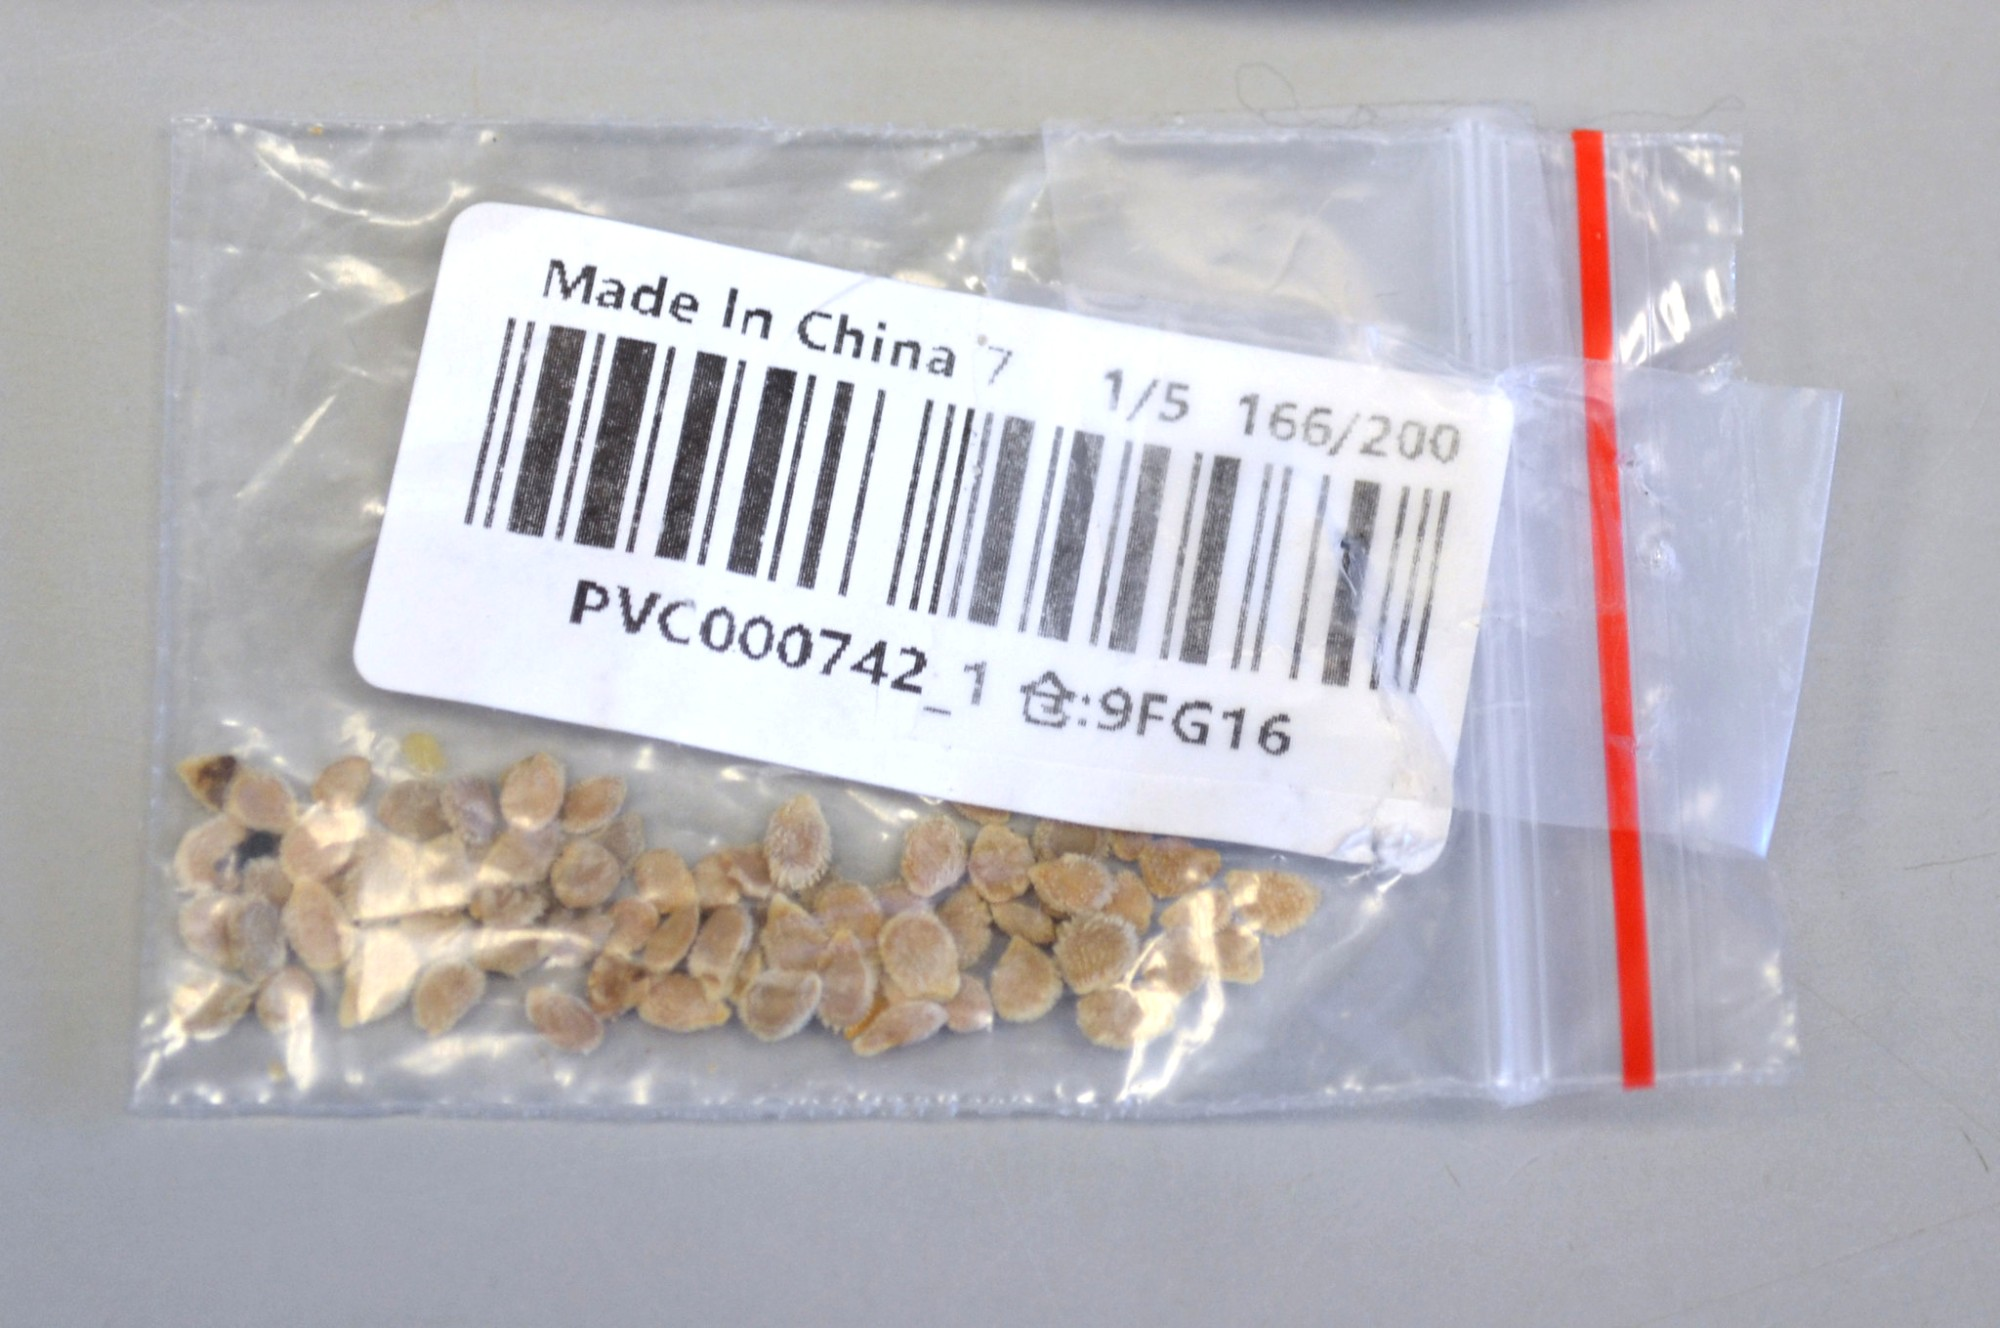 USDA Identifies Mystery Seeds